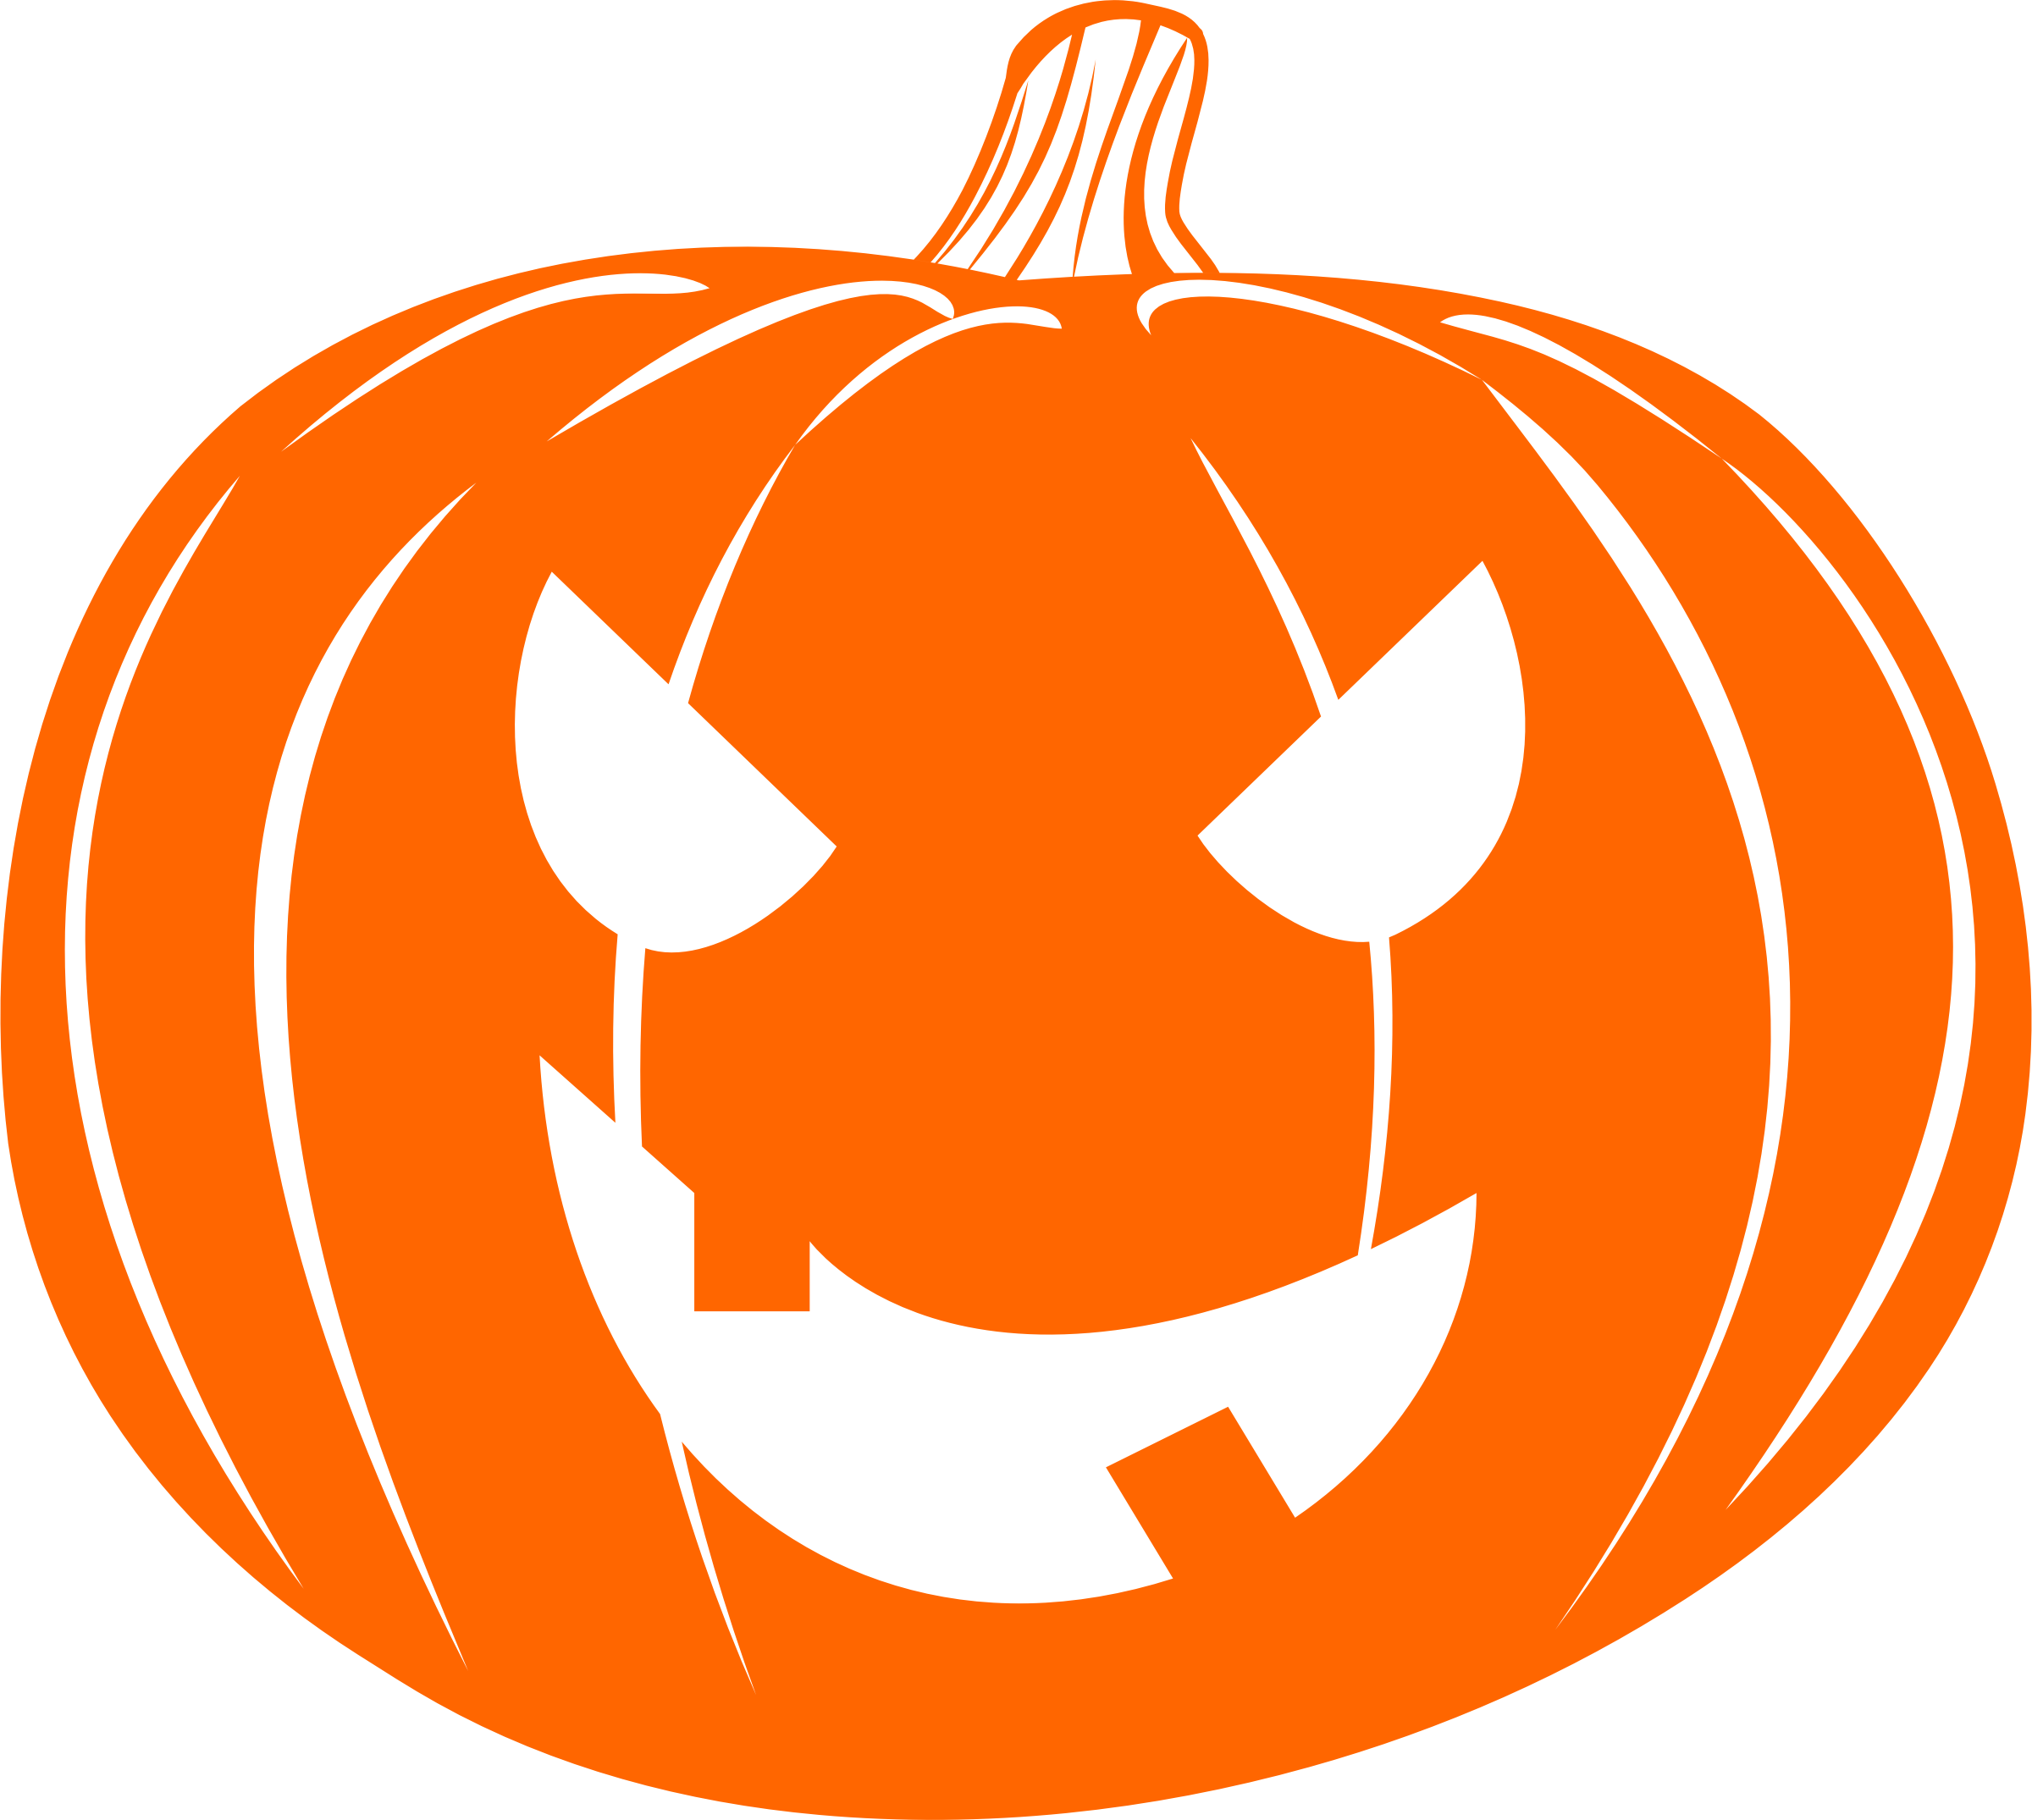 jack-o-lanterns in halloween history